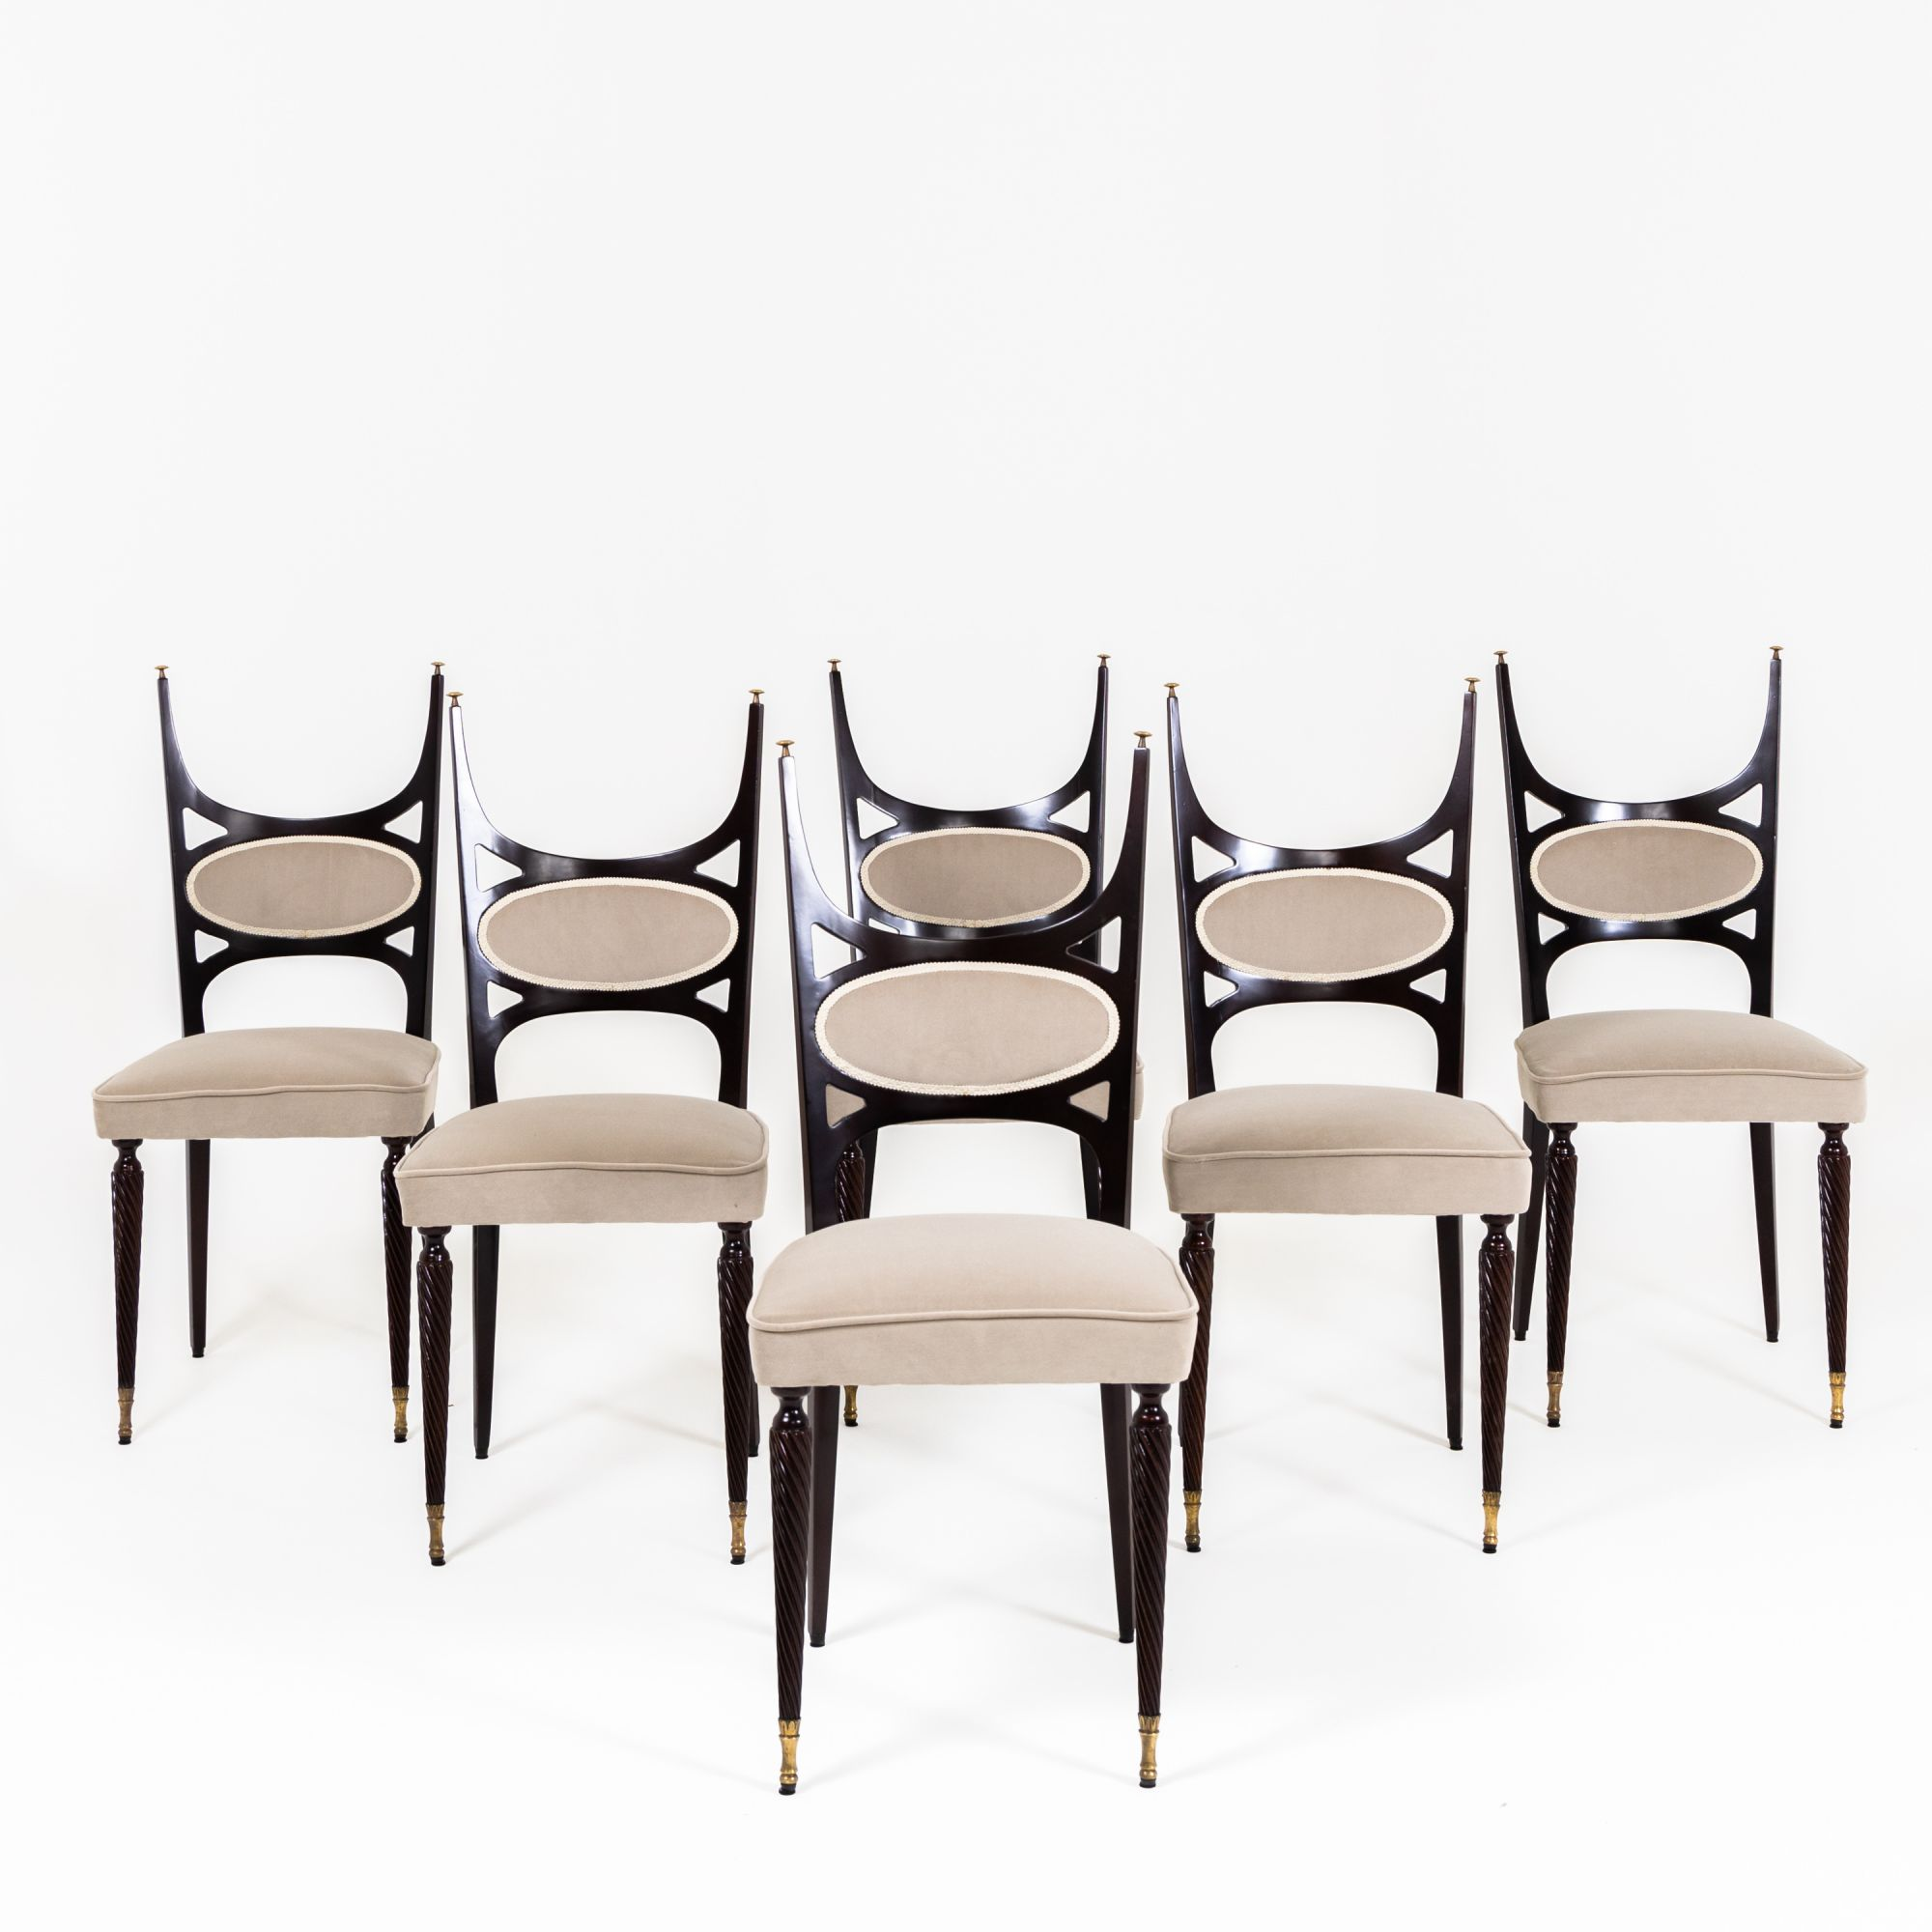 Paolo Buffa style dining chairs, Italy 9s